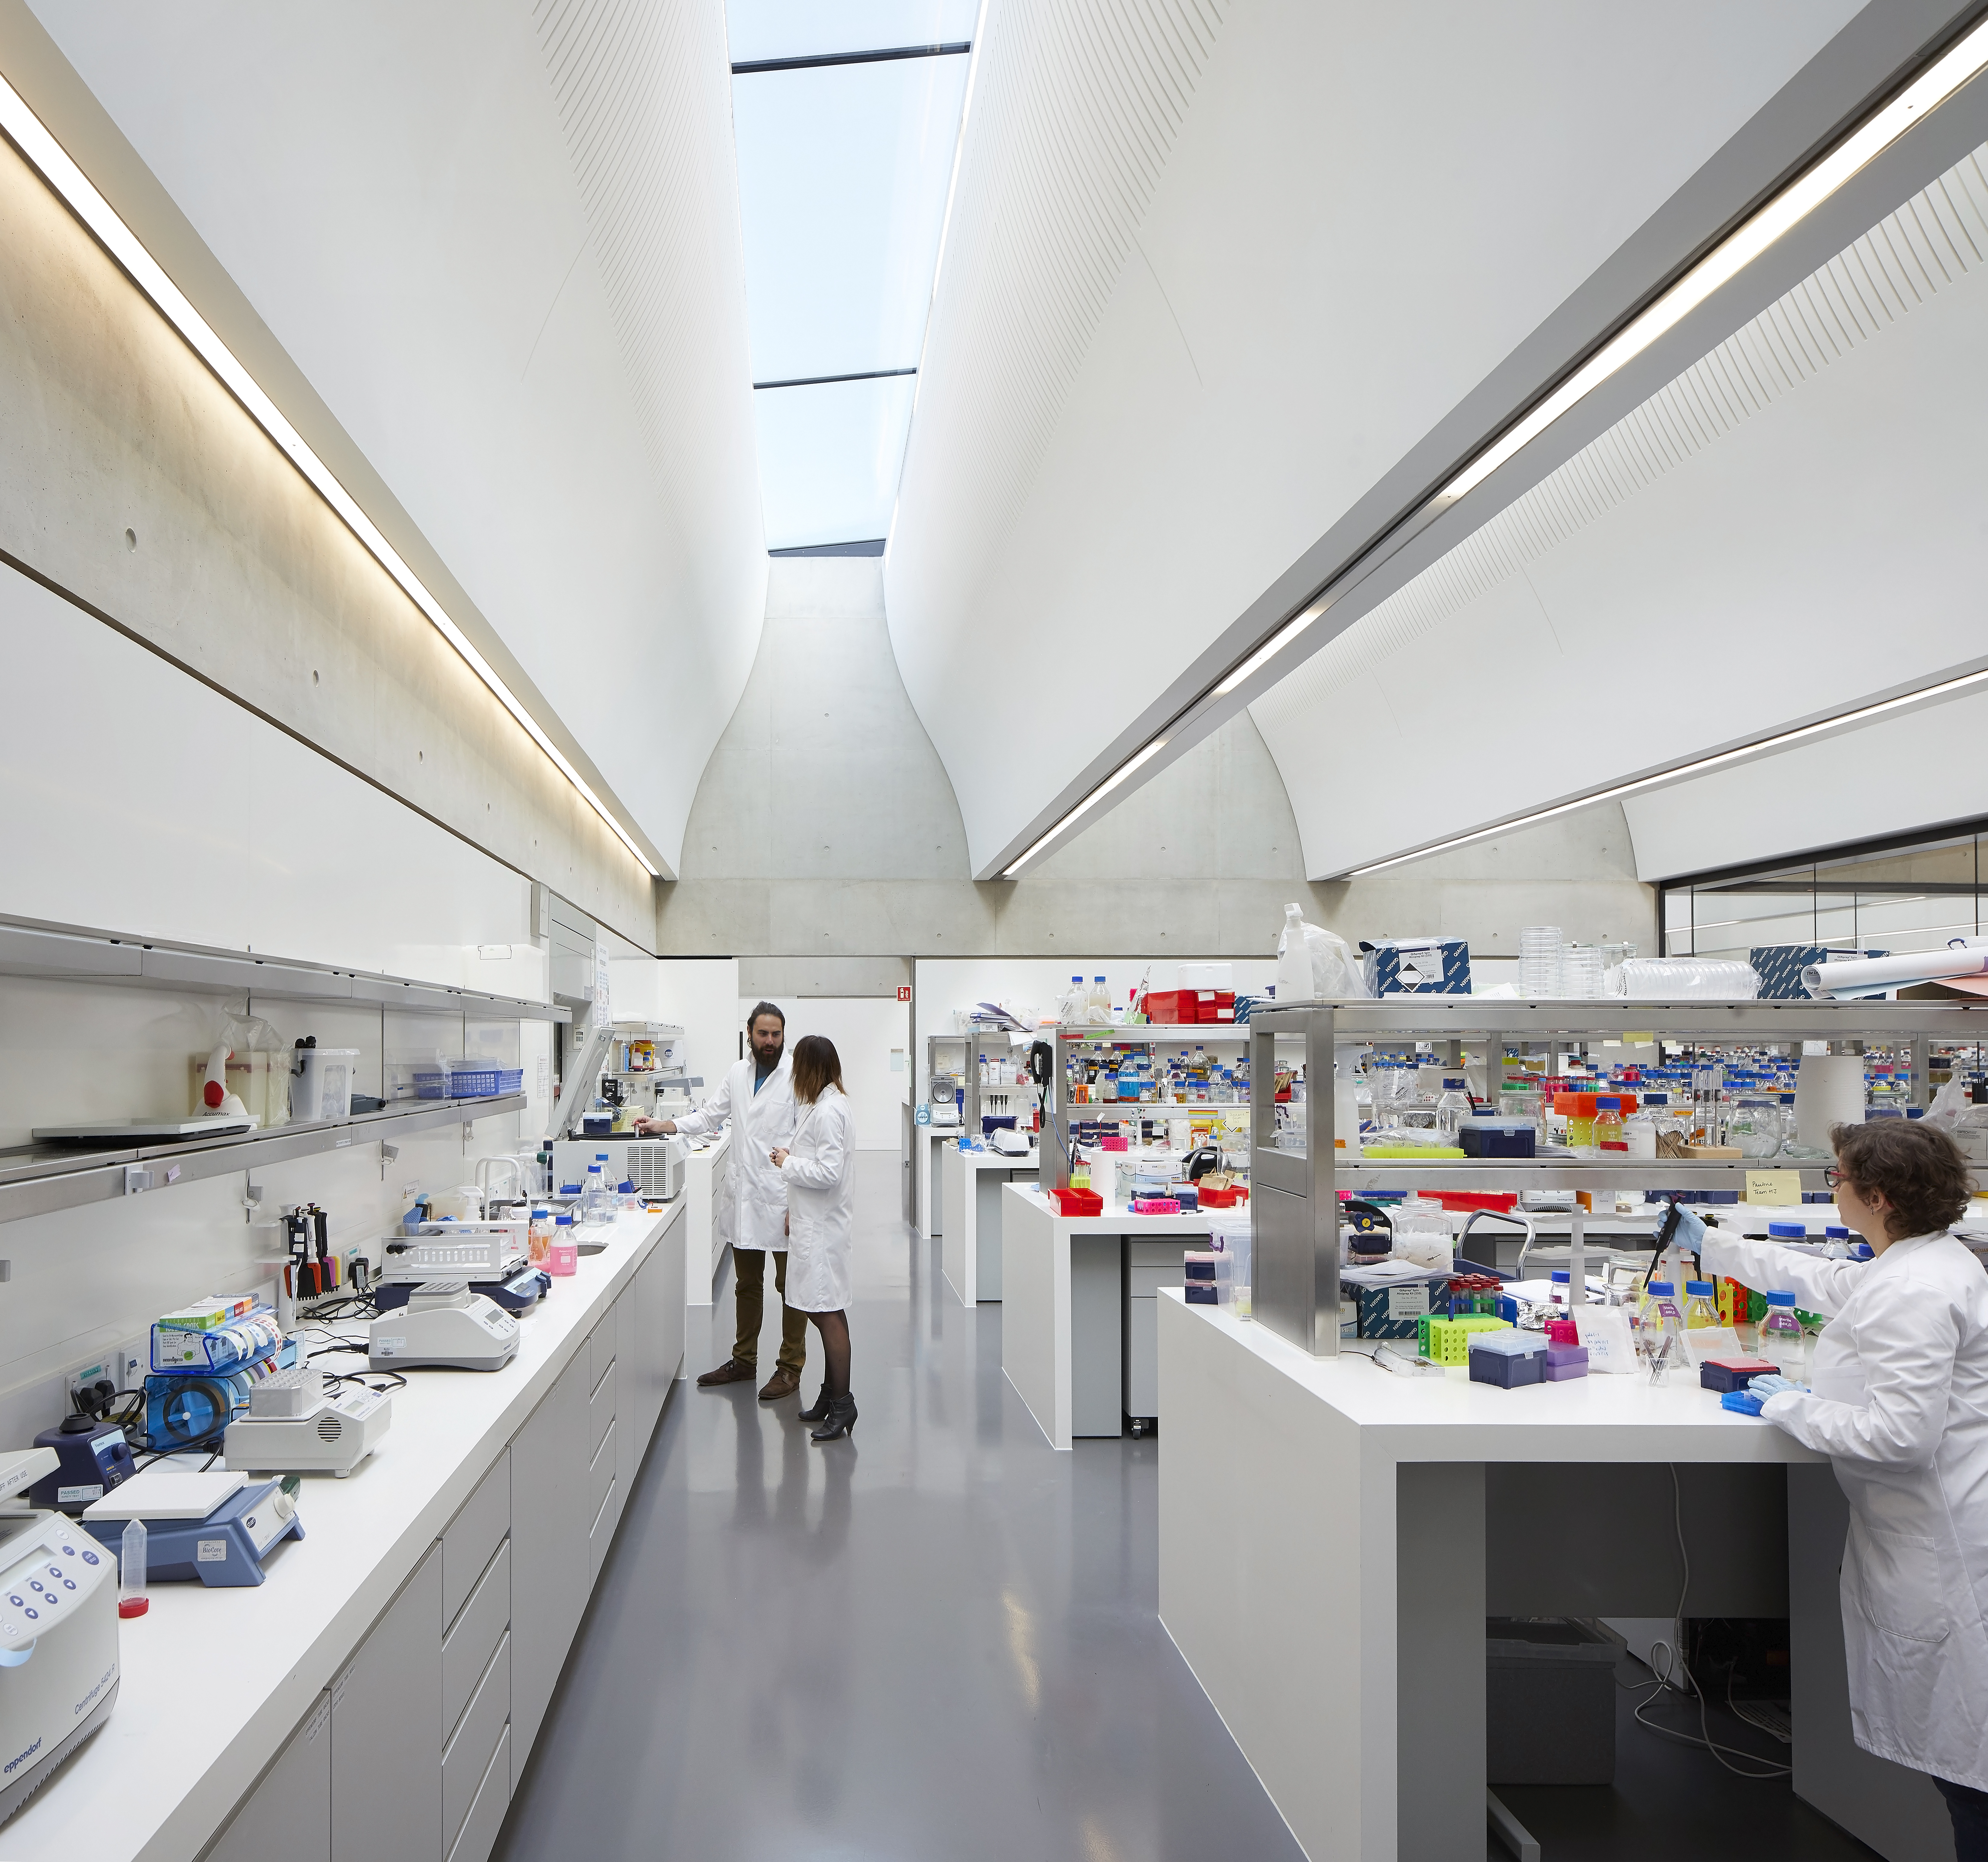 The wet lab areas within the Sainsbury Laboratory are flooded in natural light thanks to glass ceilings